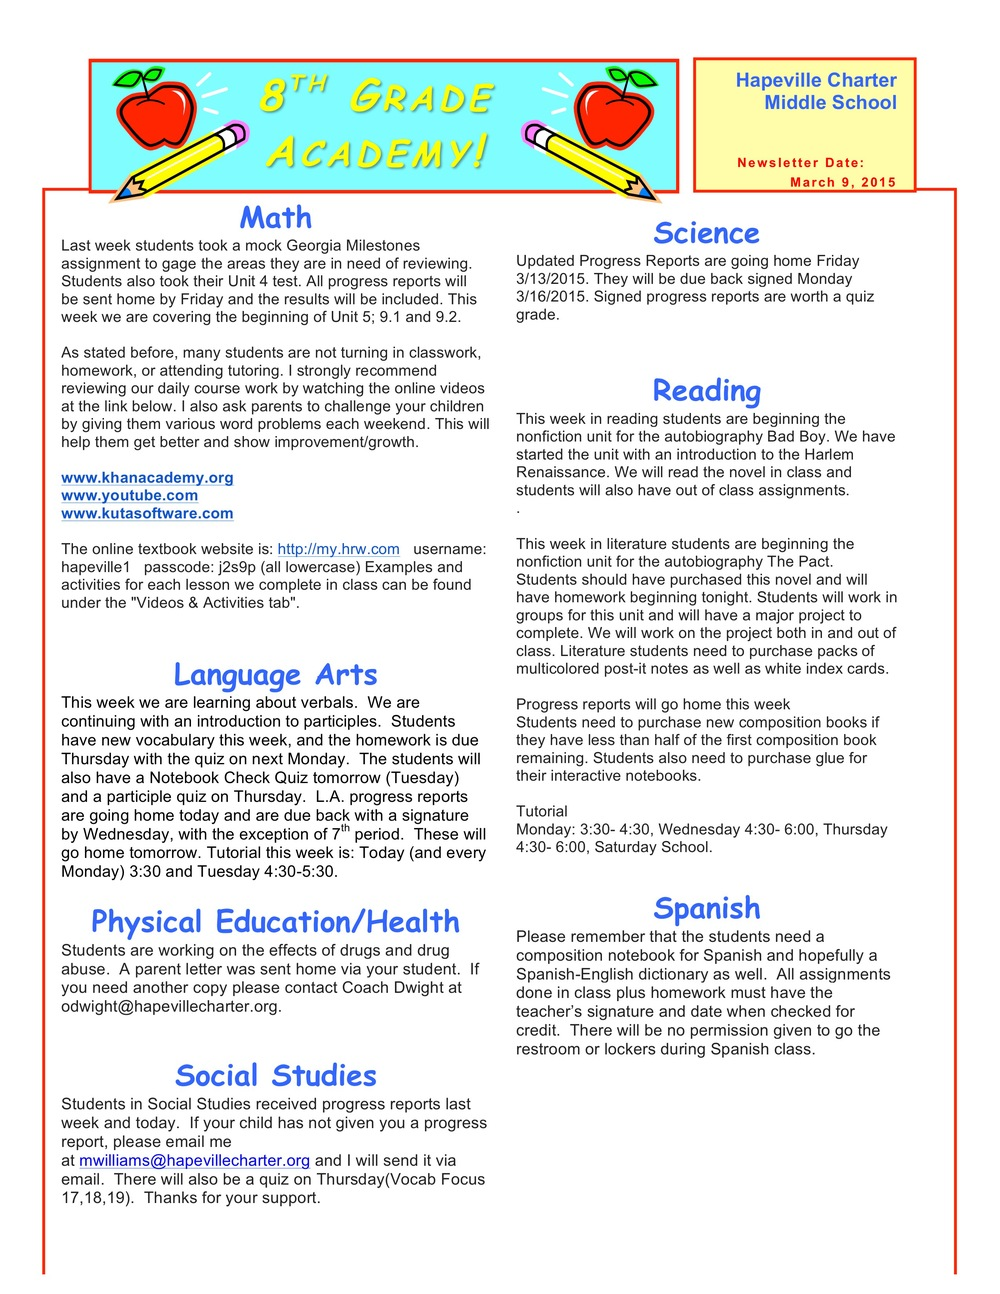 Newsletter Image8th grade March 9.jpeg